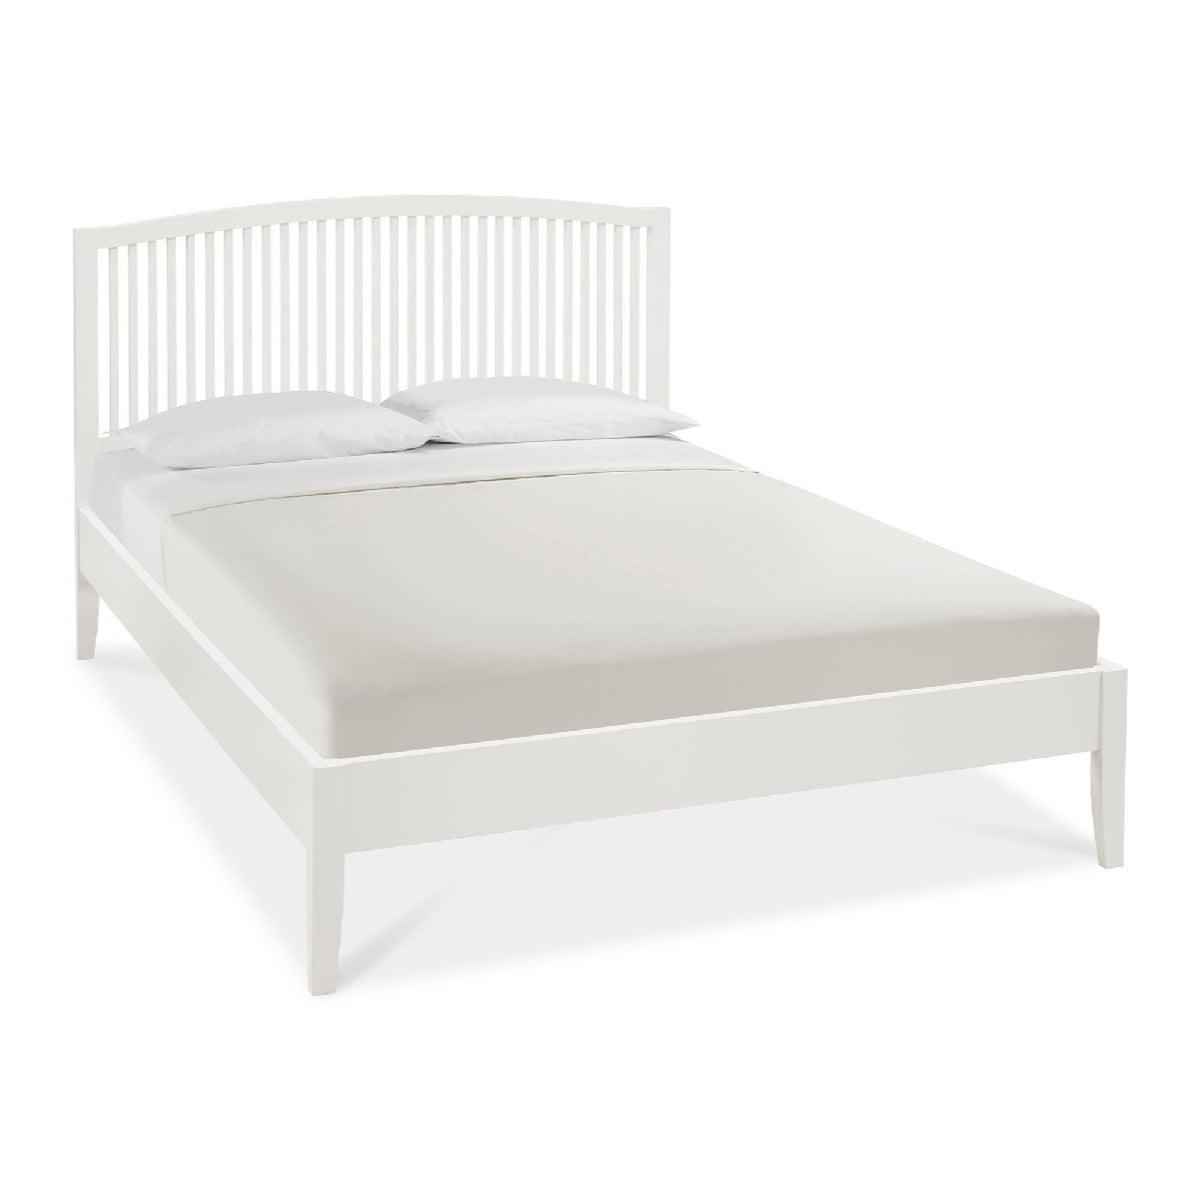 Ashlene Bed Frame